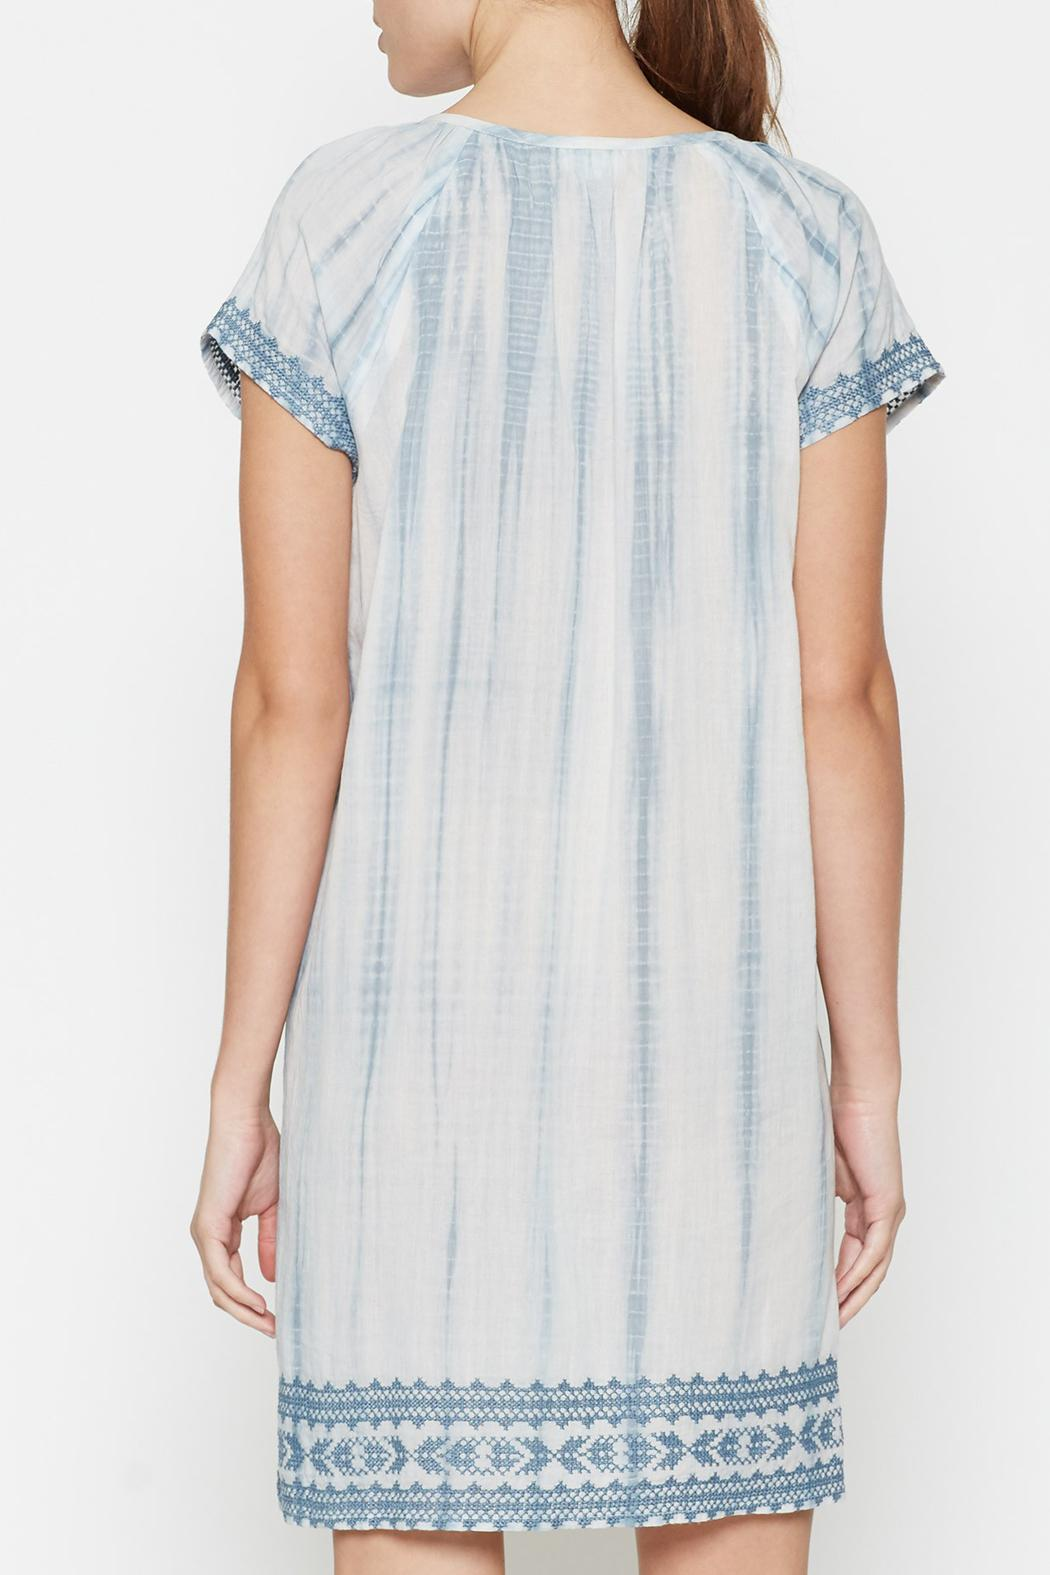 Joie soft megdalyn cotton dress from vermont by green envy for Soft cotton dress shirts